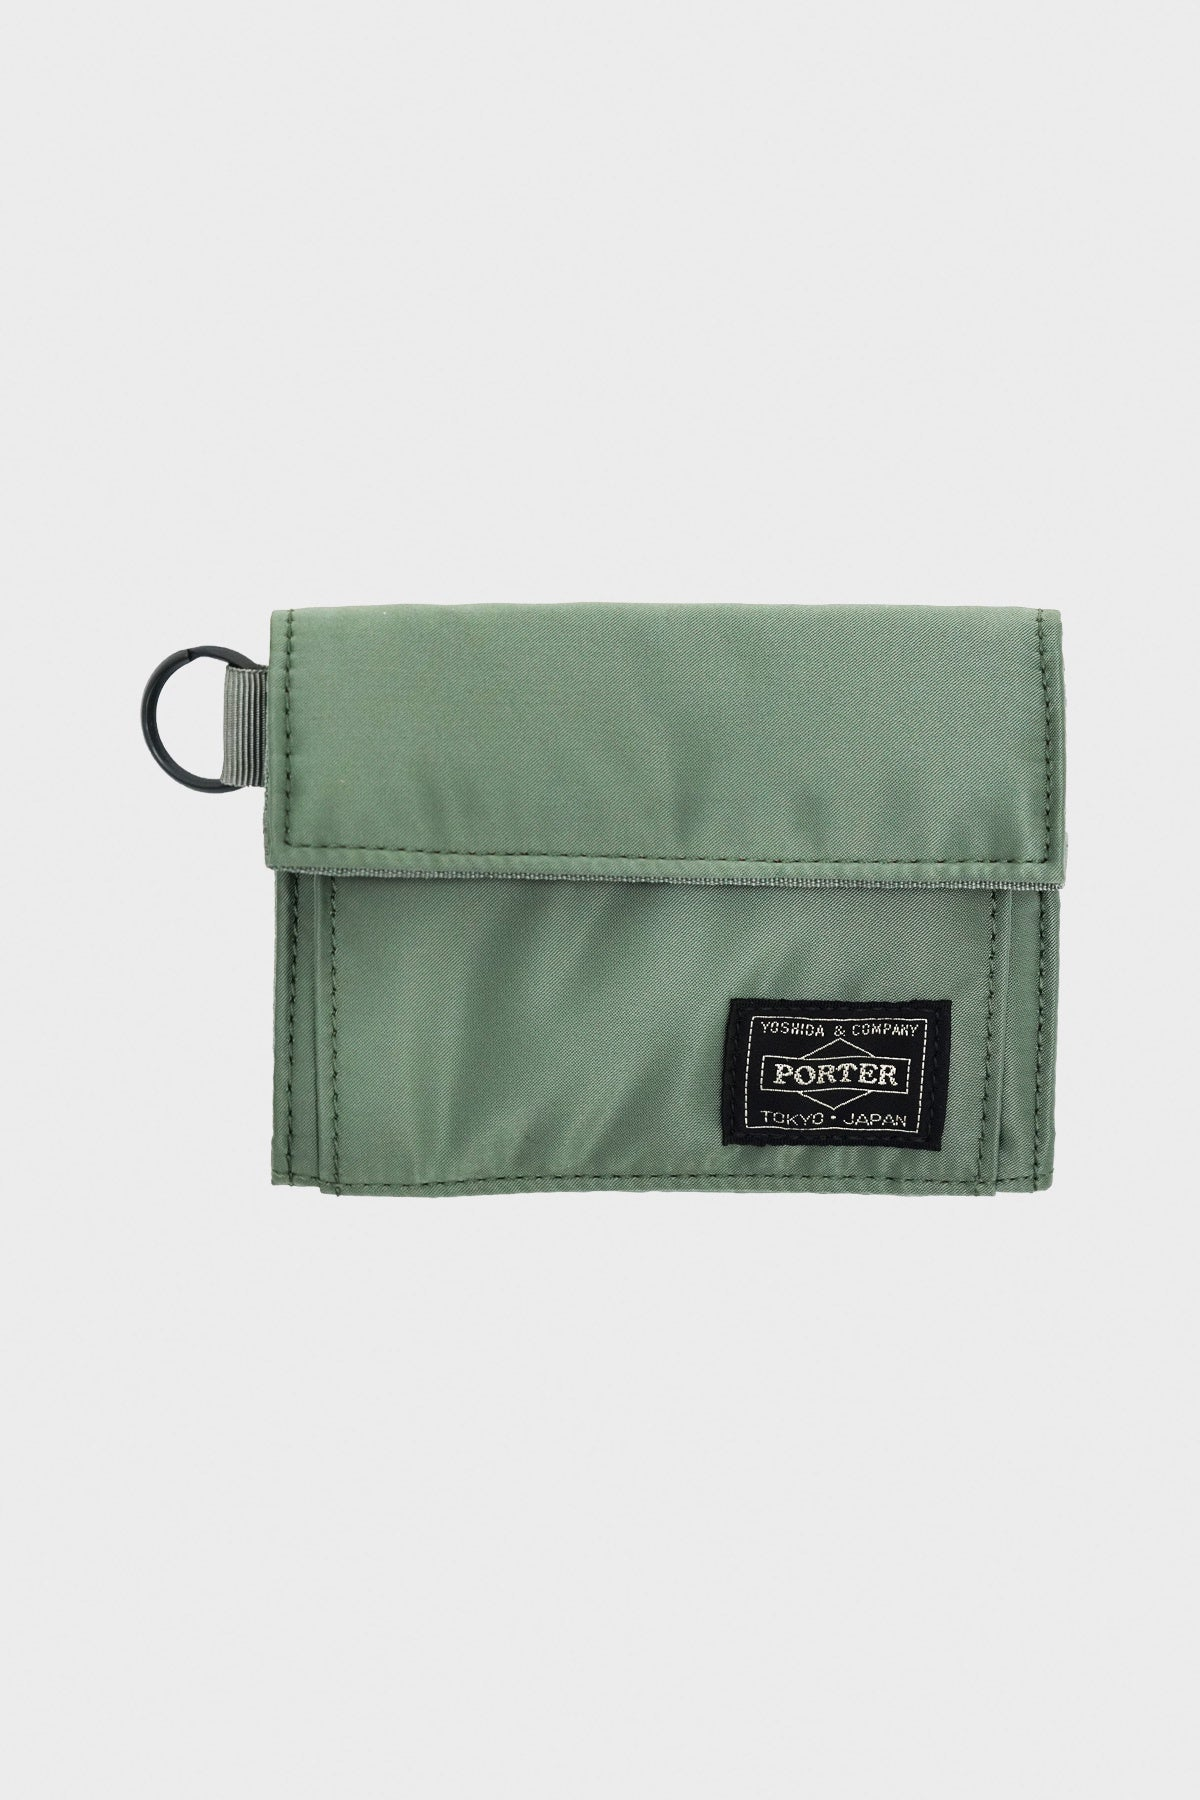 Porter Yoshida and Co - Nylon Wallet - Sage Green - Canoe Club